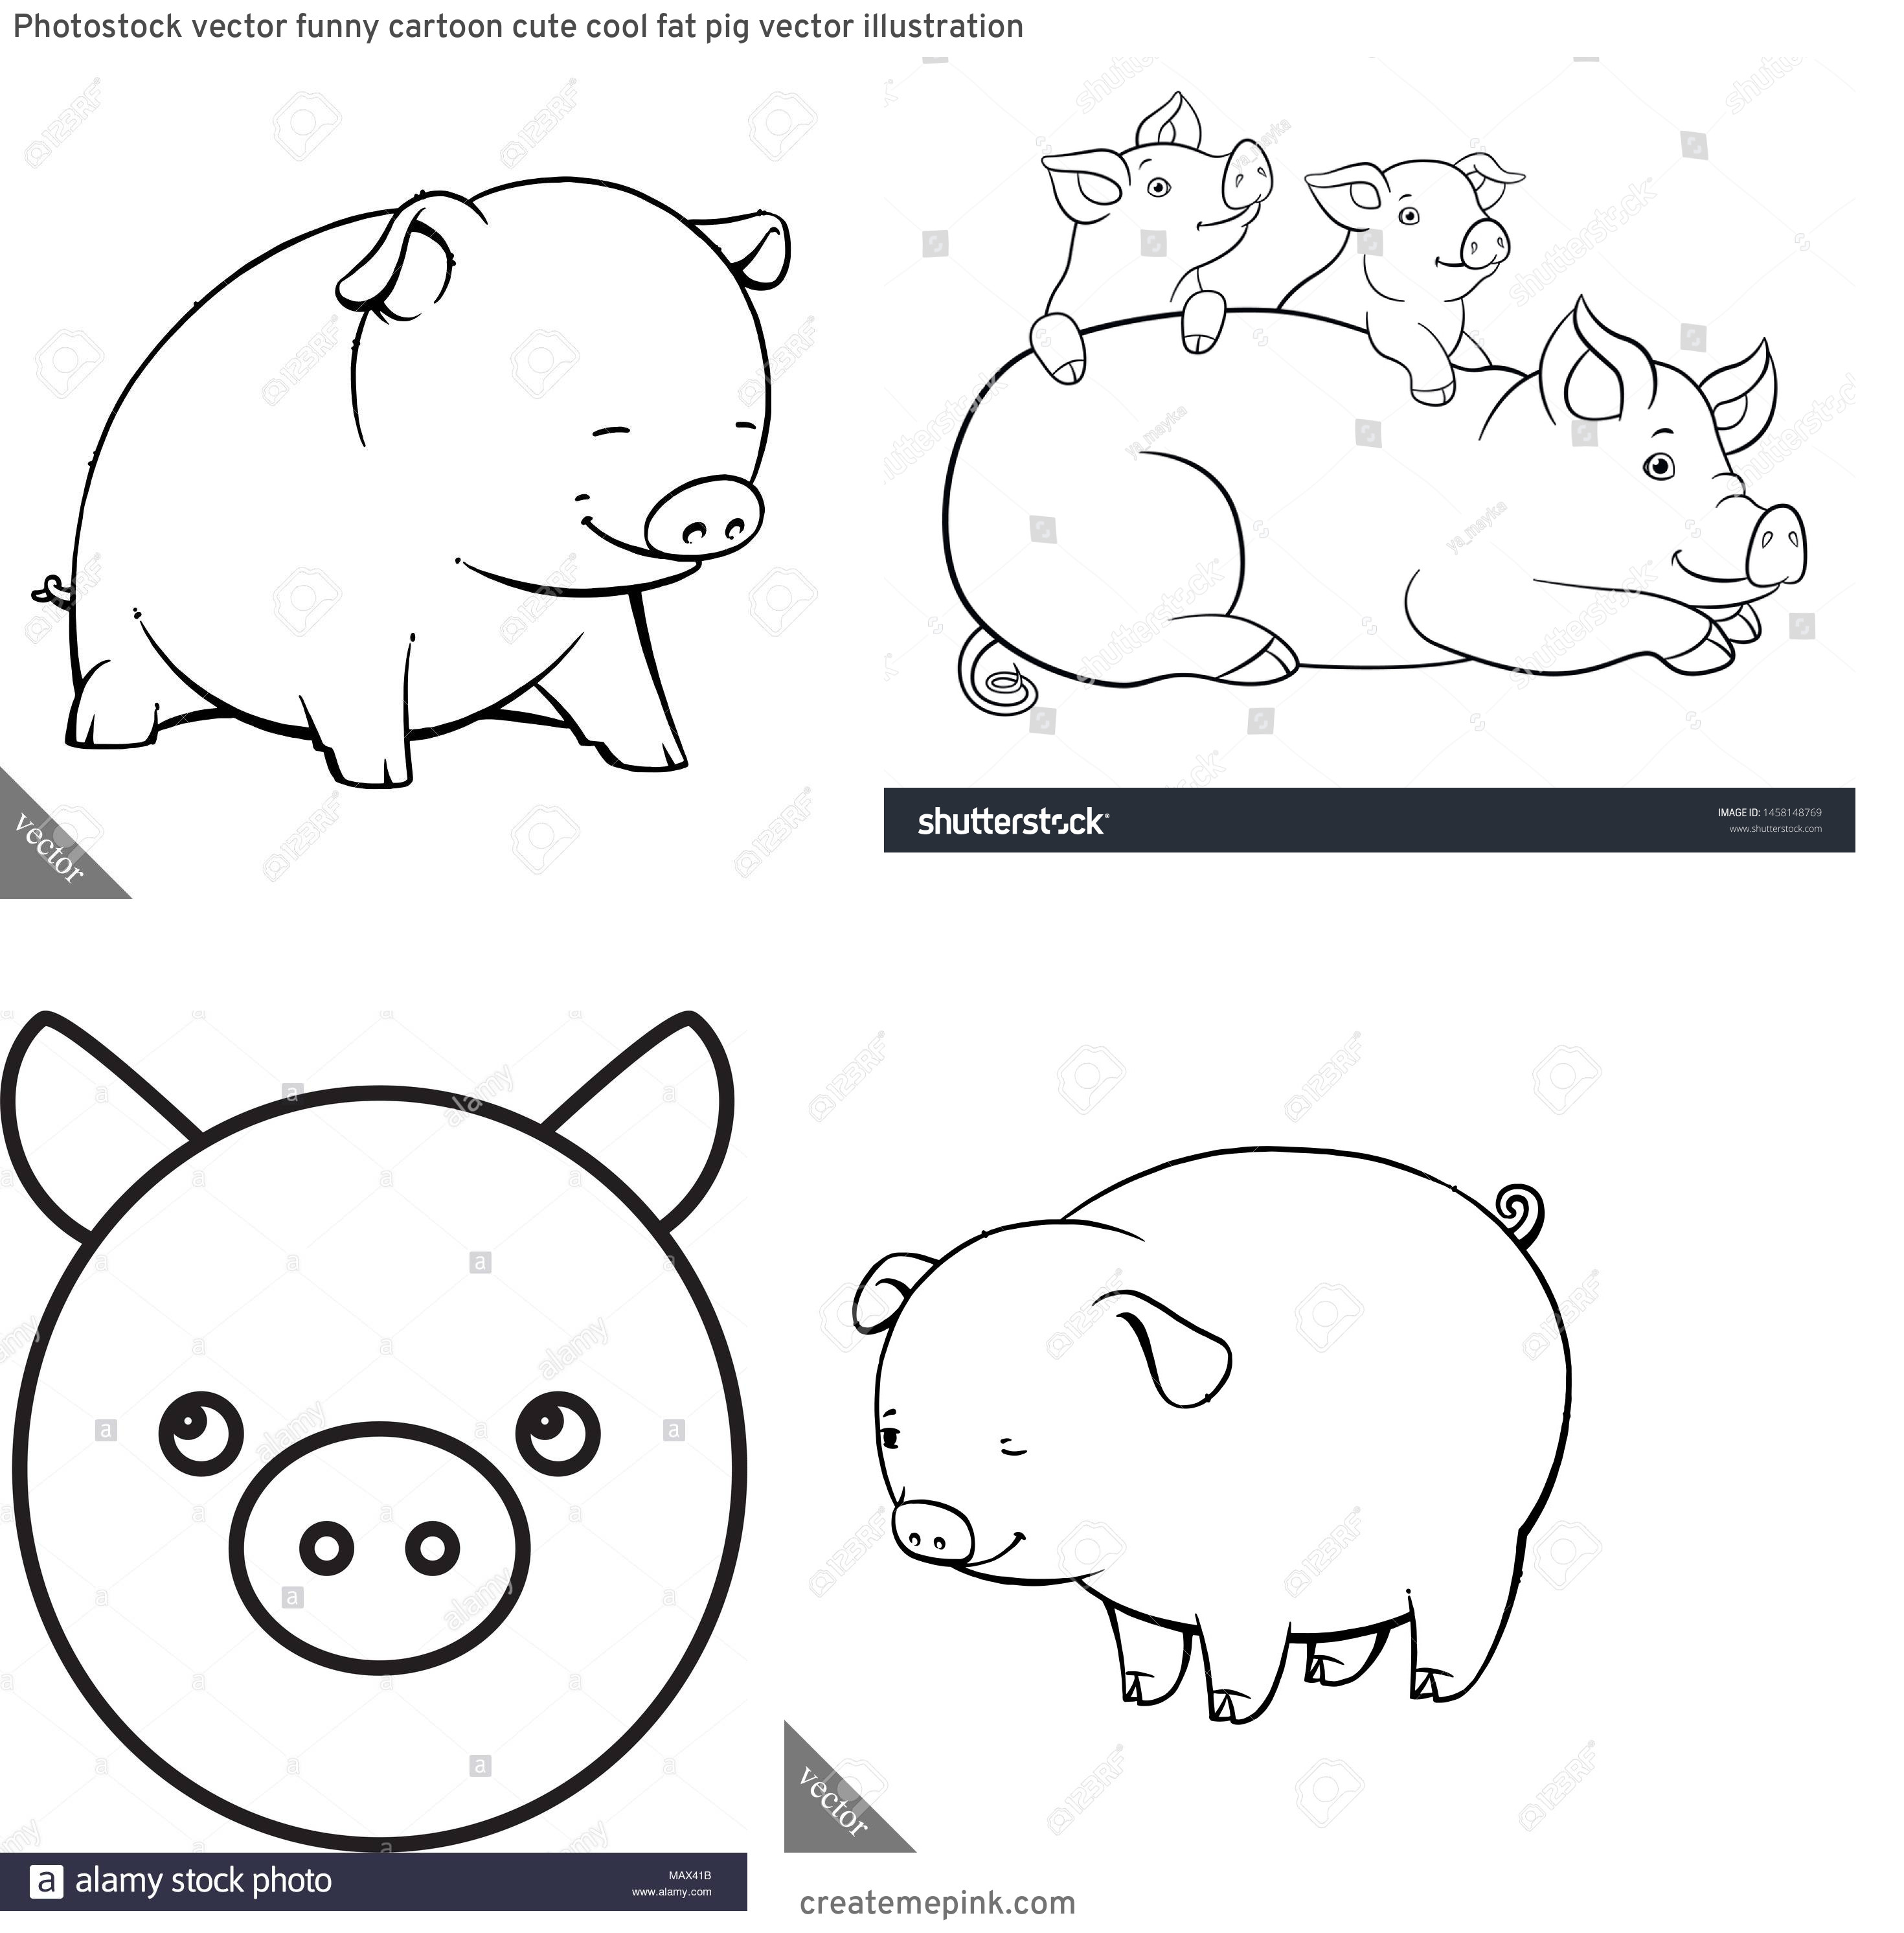 Cute Pig Vector Black And White: Photostock Vector Funny Cartoon Cute Cool Fat Pig Vector Illustration